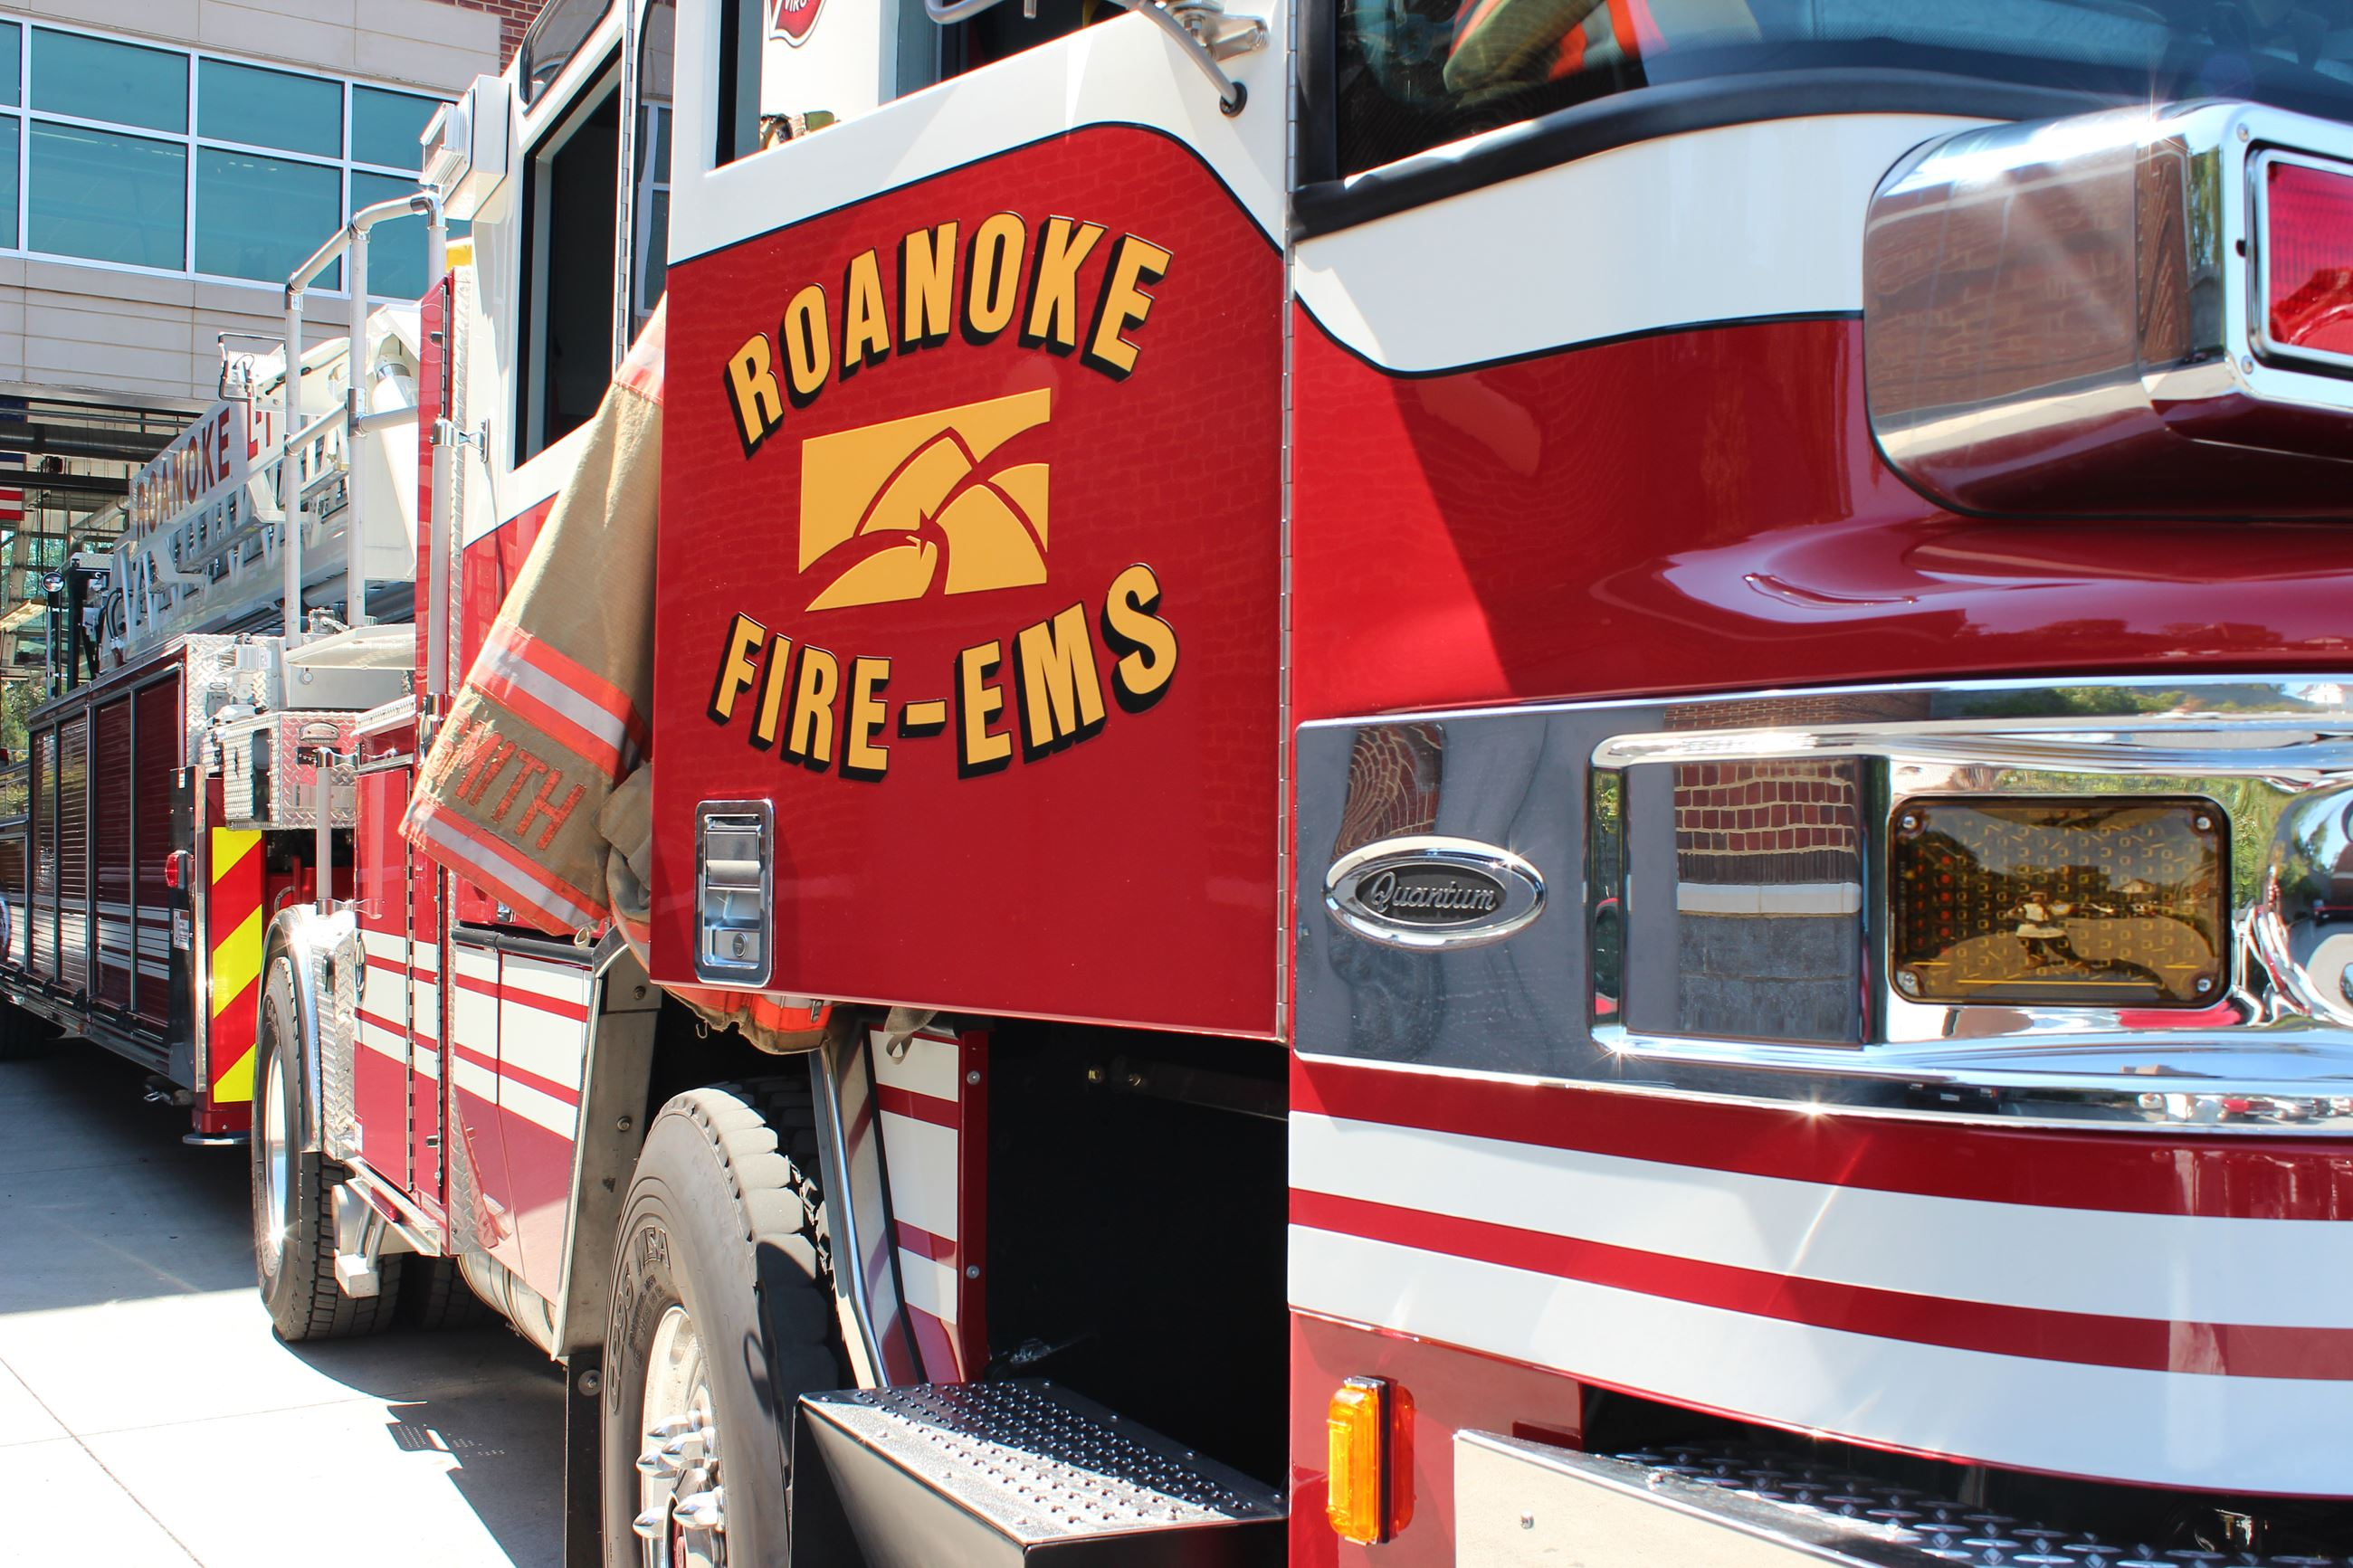 Roanoke FireEMS Truck